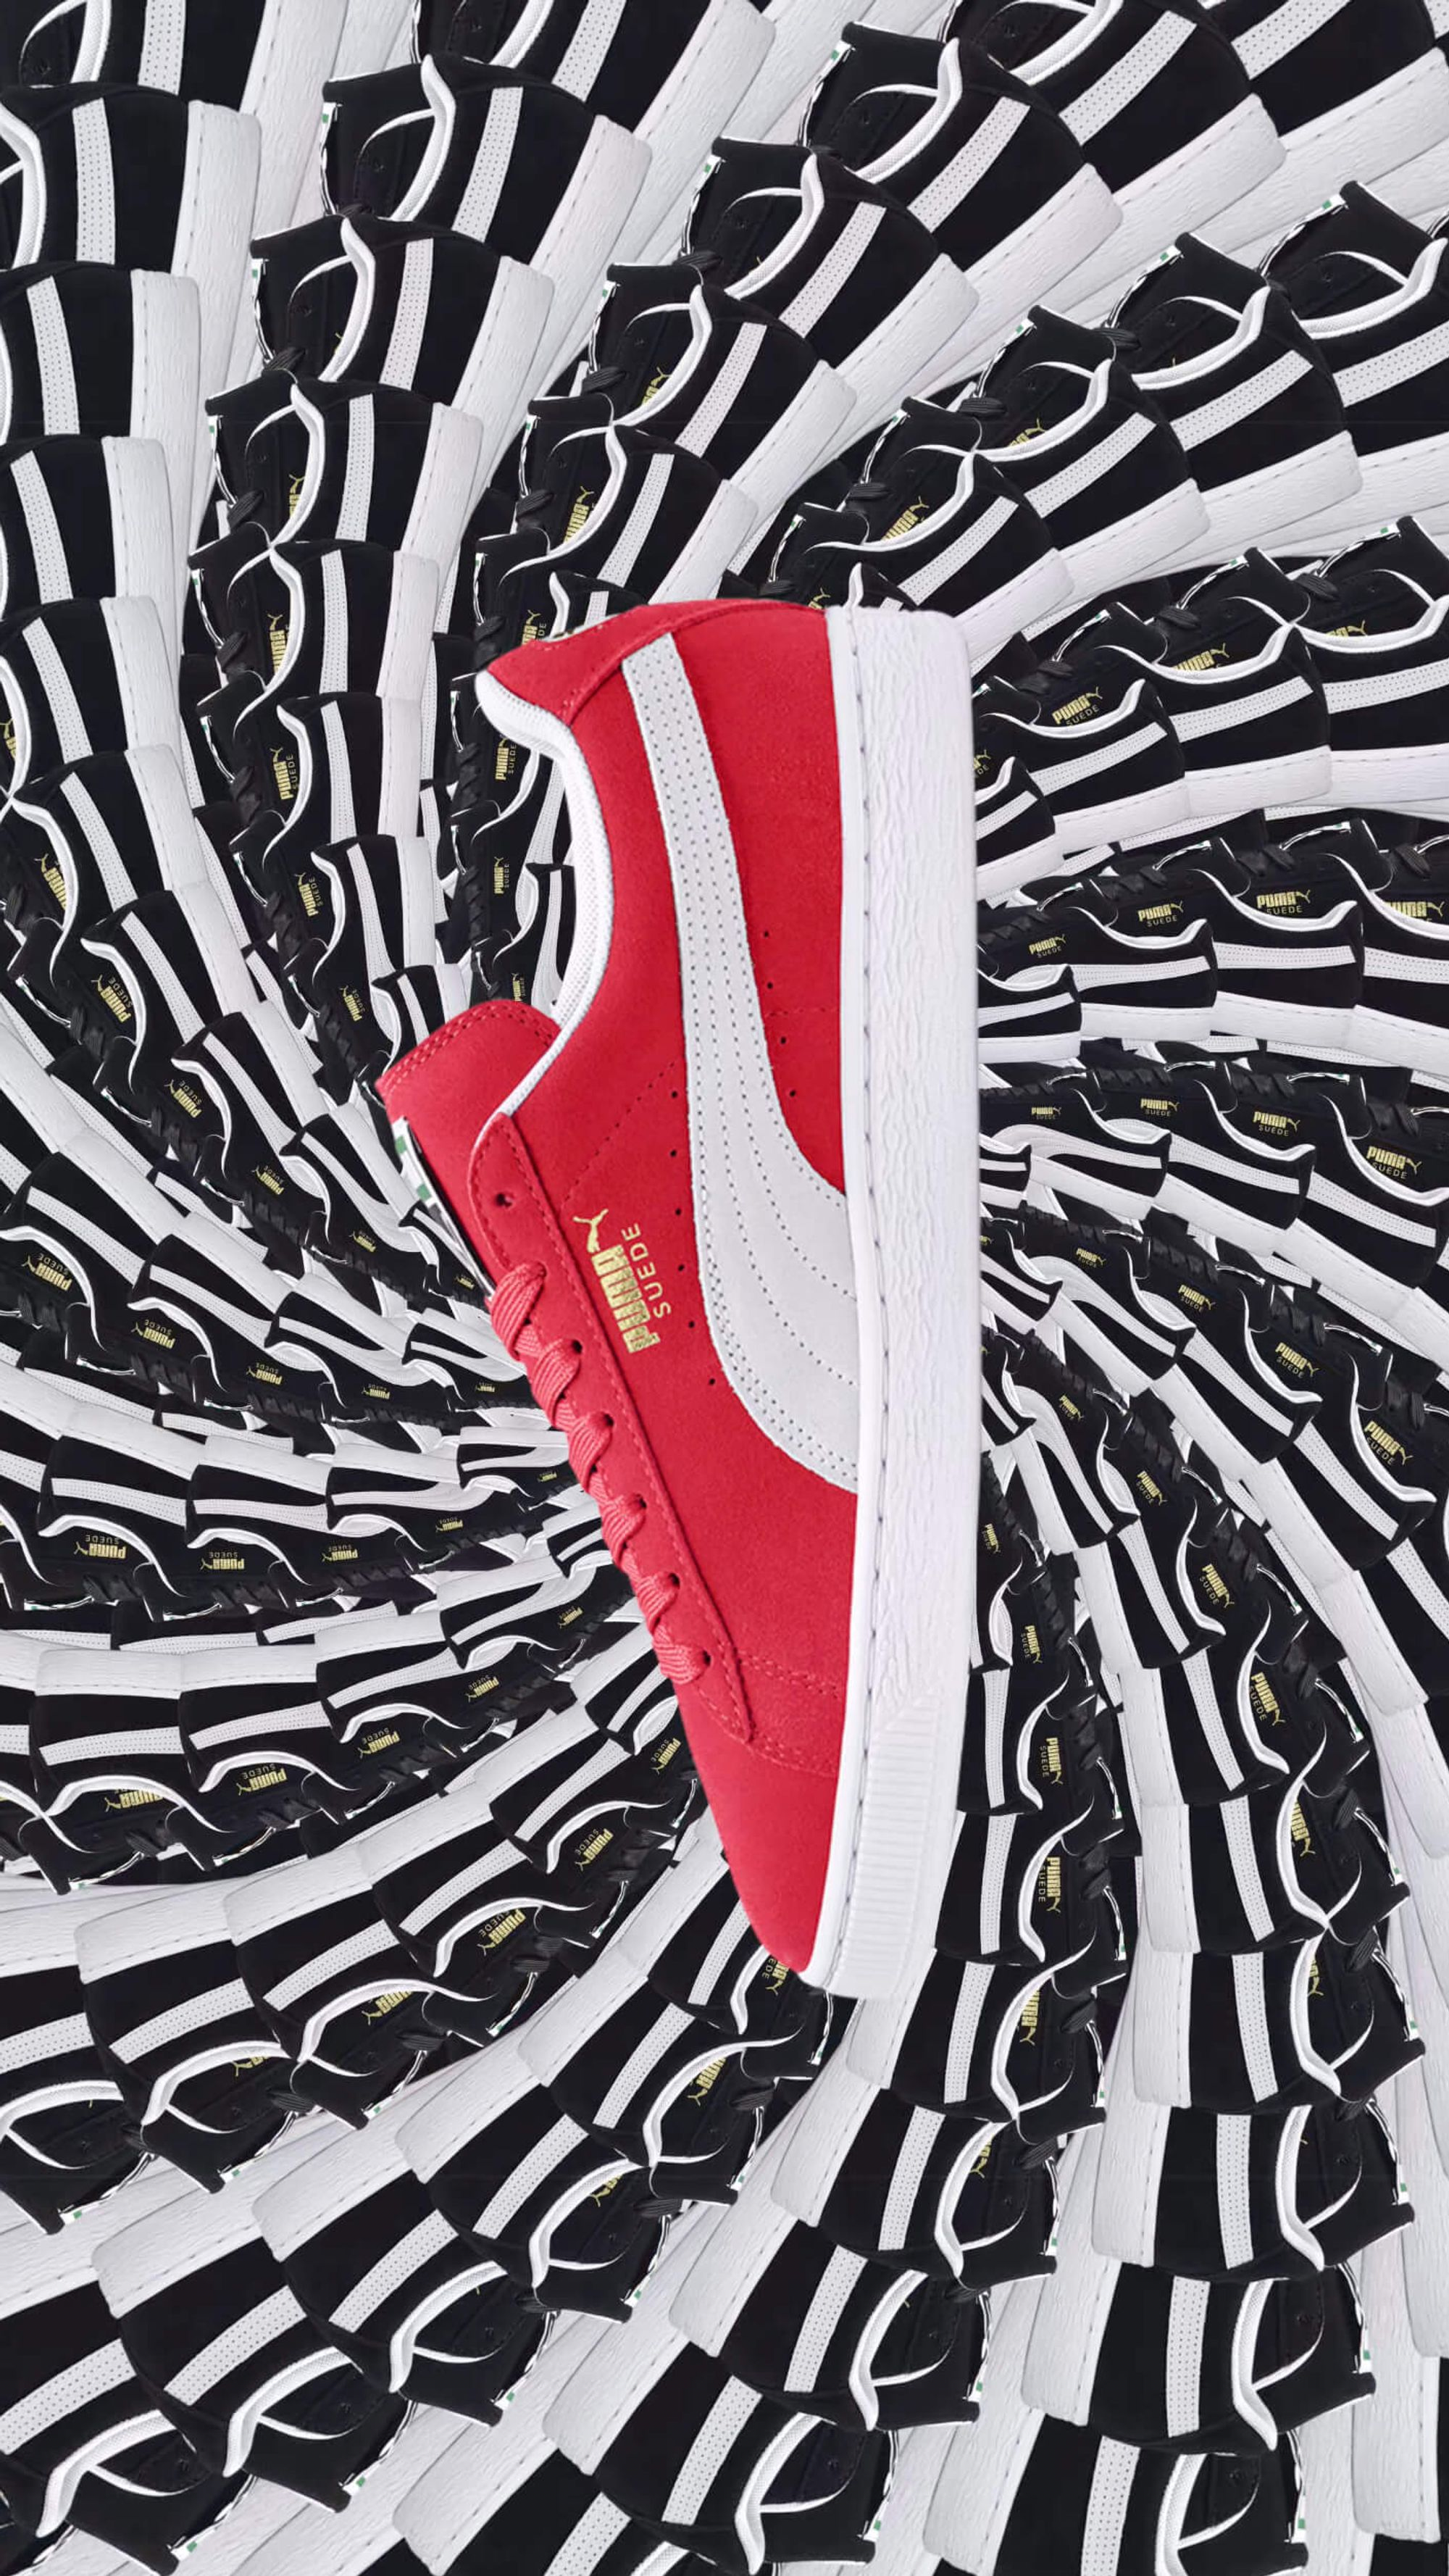 PUMA Suede repetitive pattern portrait